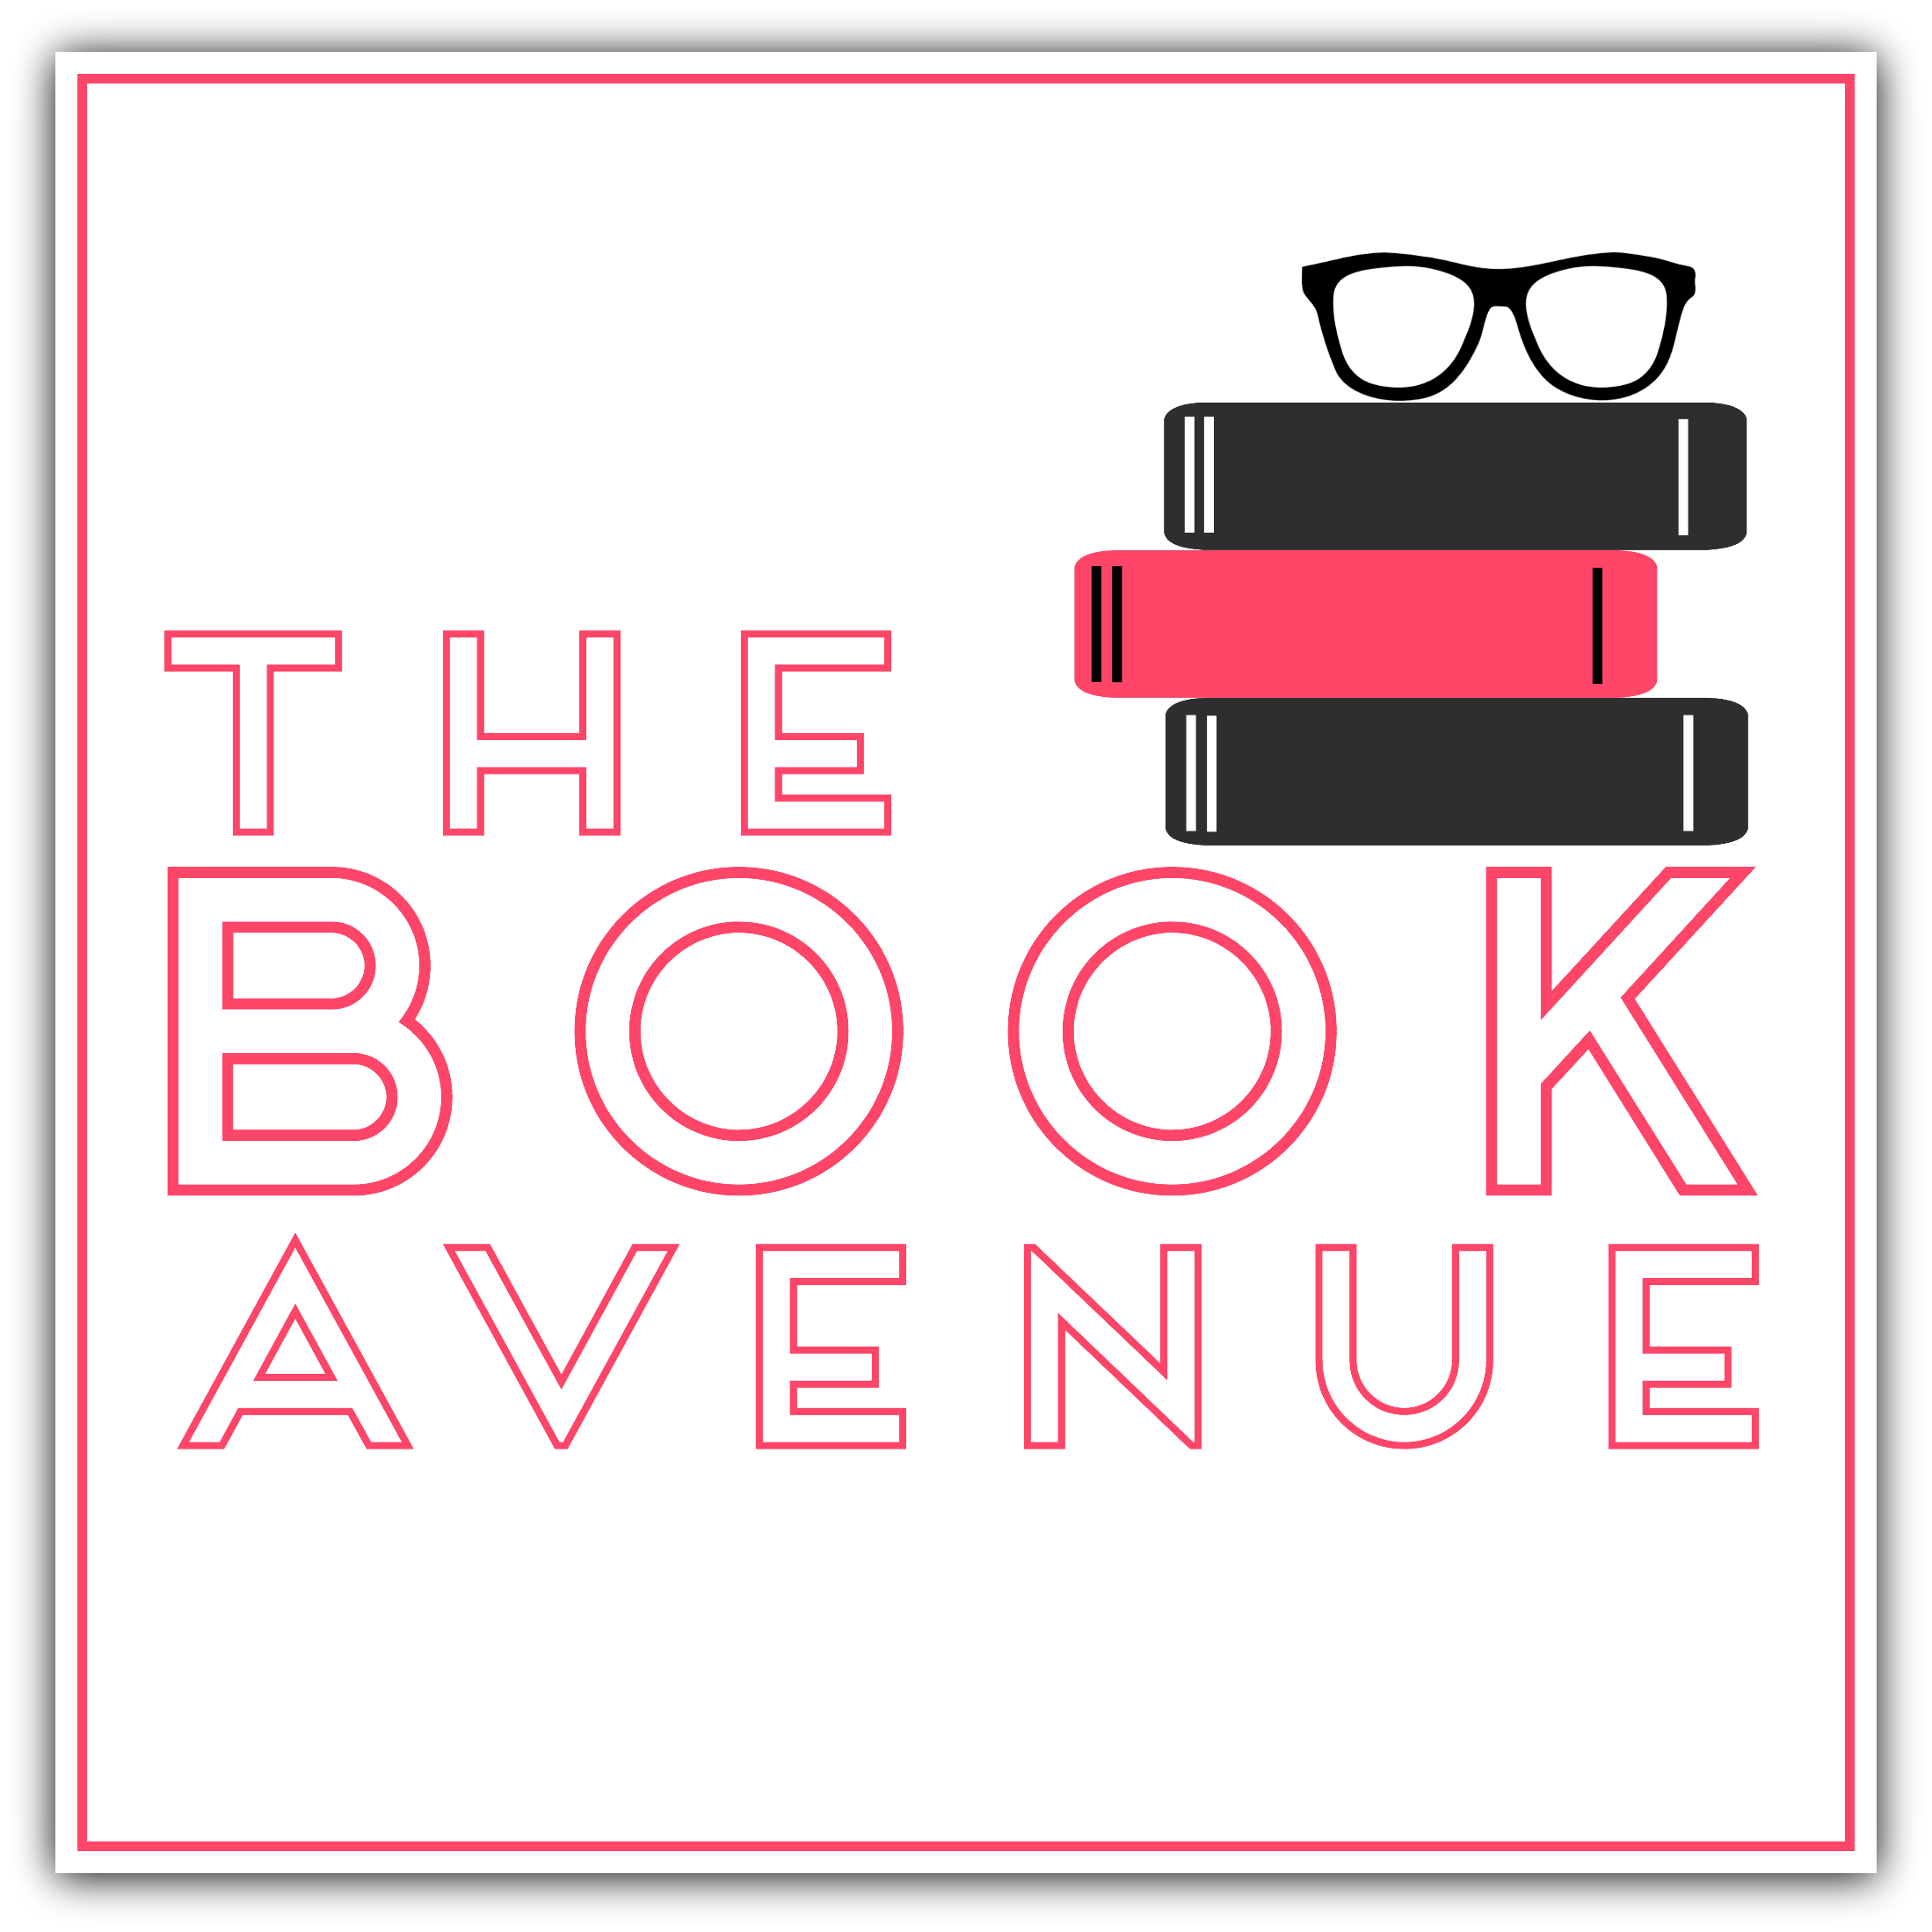 The Book Avenue